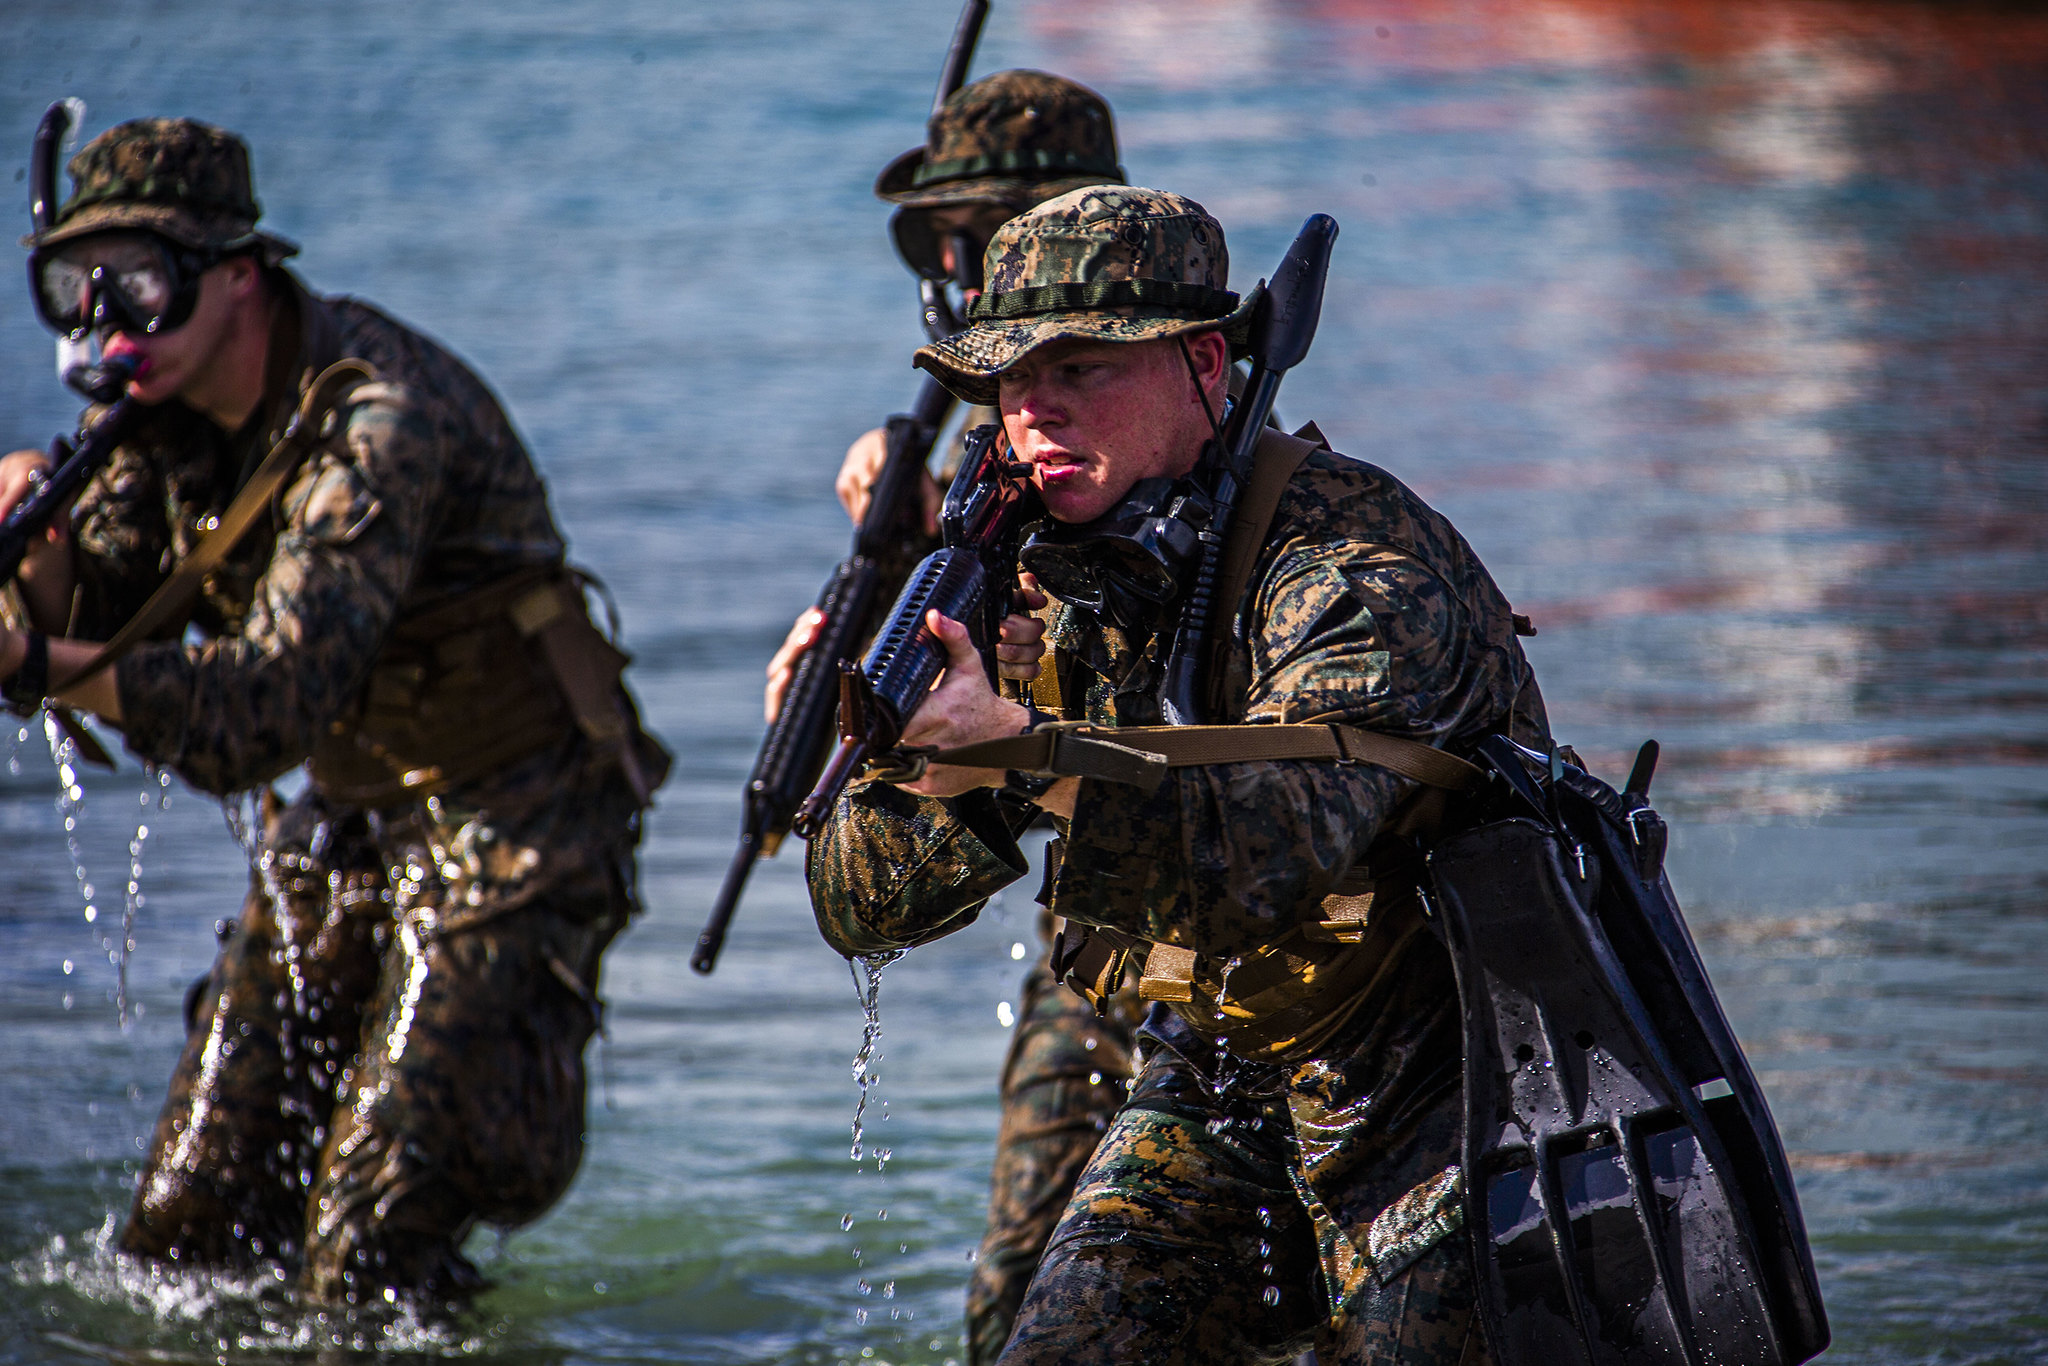 Marines hit the shore during an amphibious assault exercise on Marine Corps Base Hawaii, April 28, 2020. (Lance Cpl. Jacob Wilson/Marine Corps)